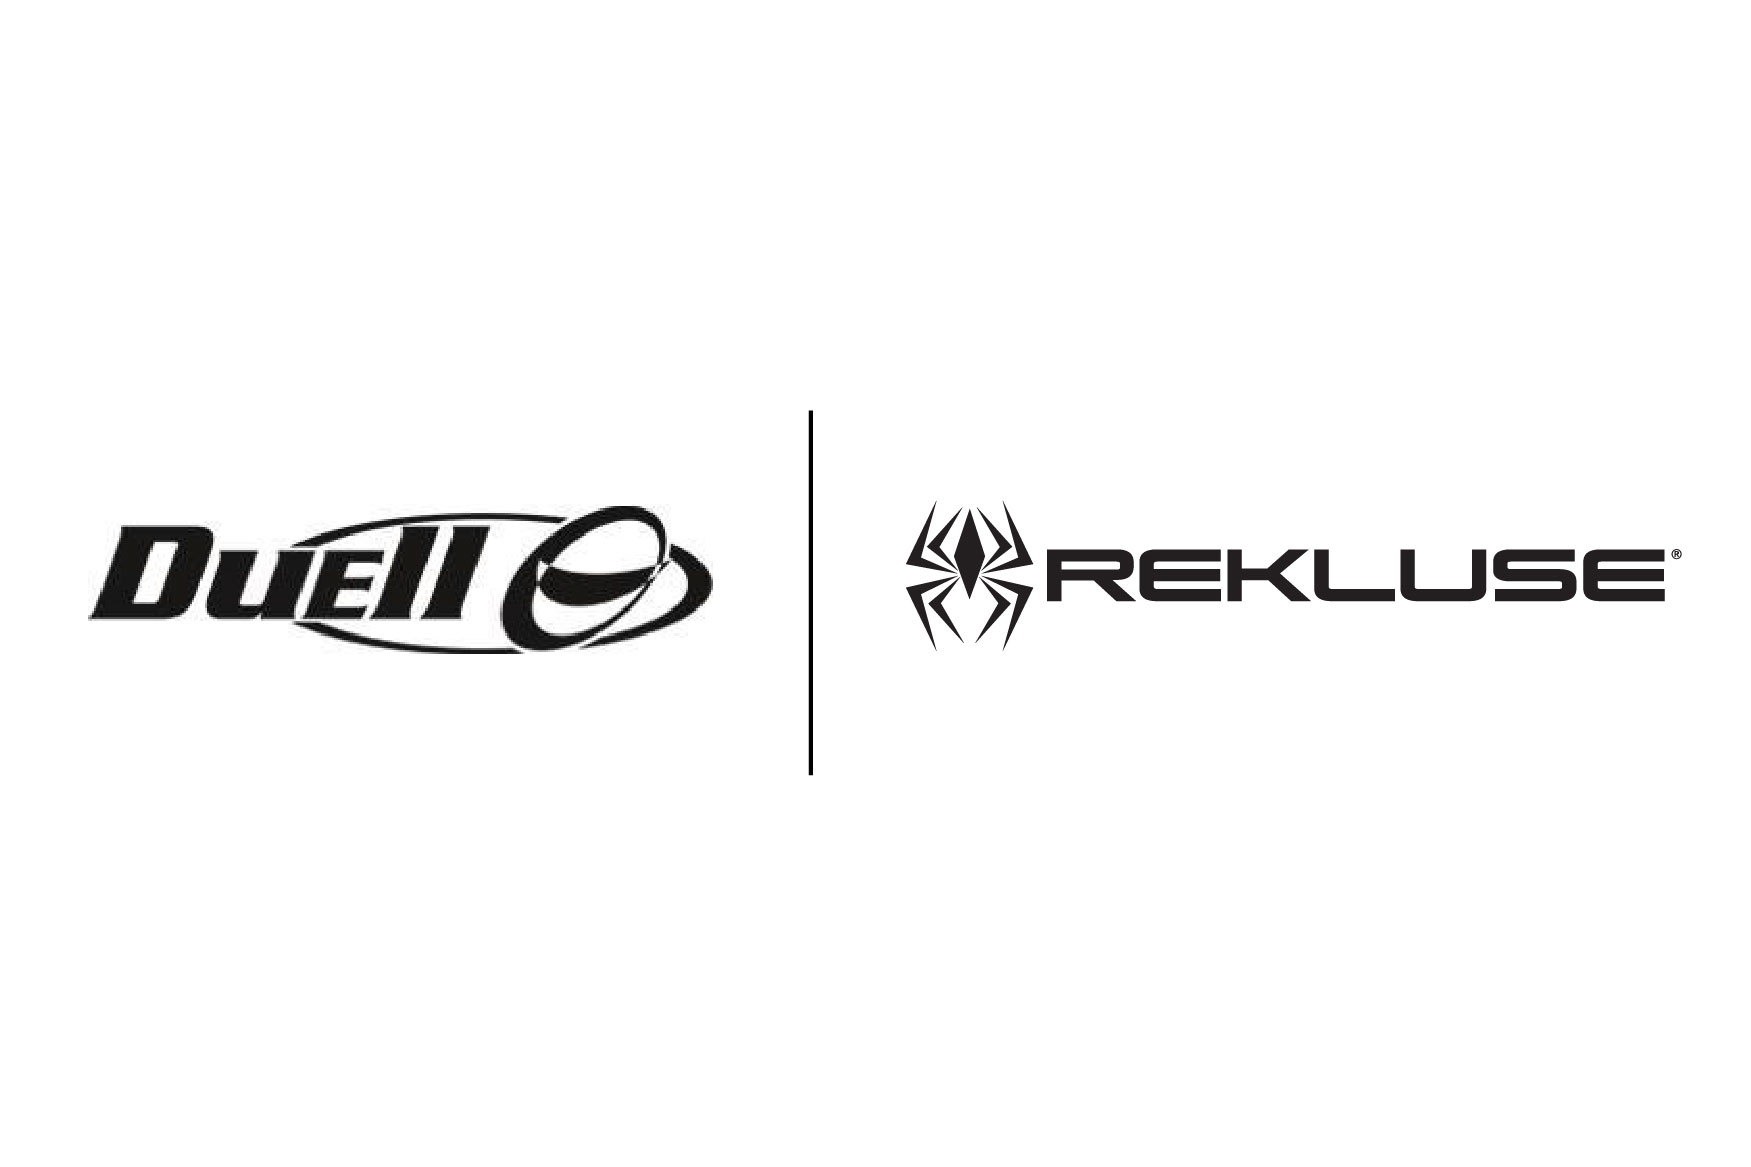 Rekluse welcomes Duell as distribution partner